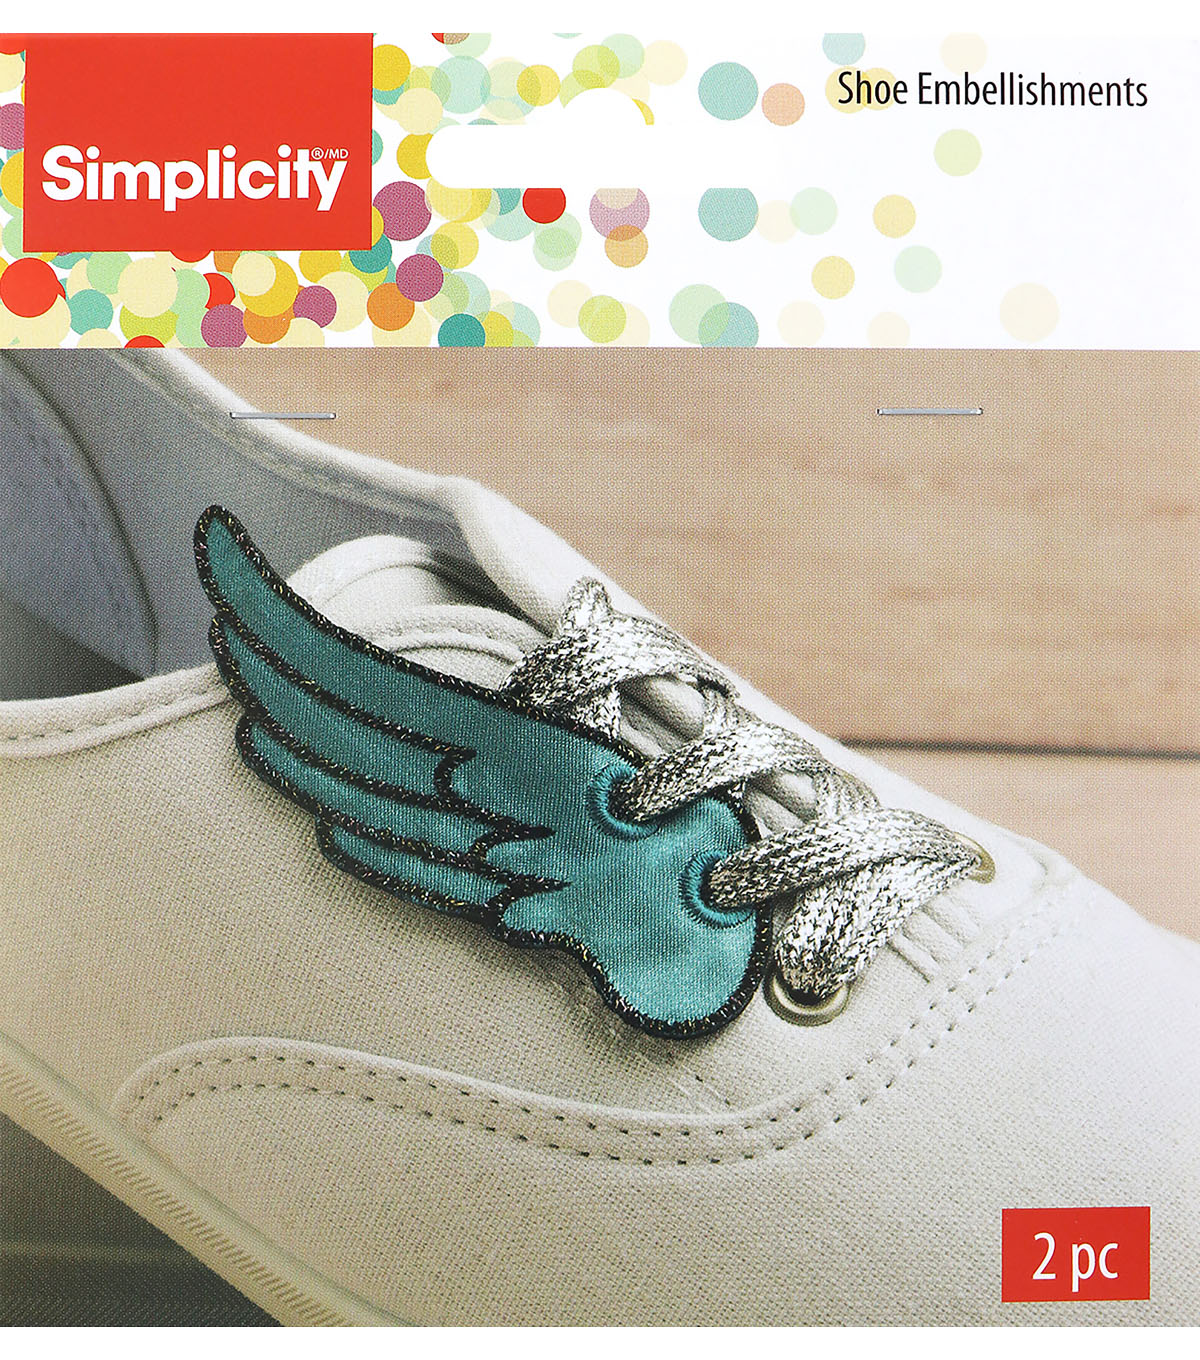 Wrights 2 pk 1.5\u0027\u0027x3.38\u0027\u0027 Wing Shoe Embellishments-Teal